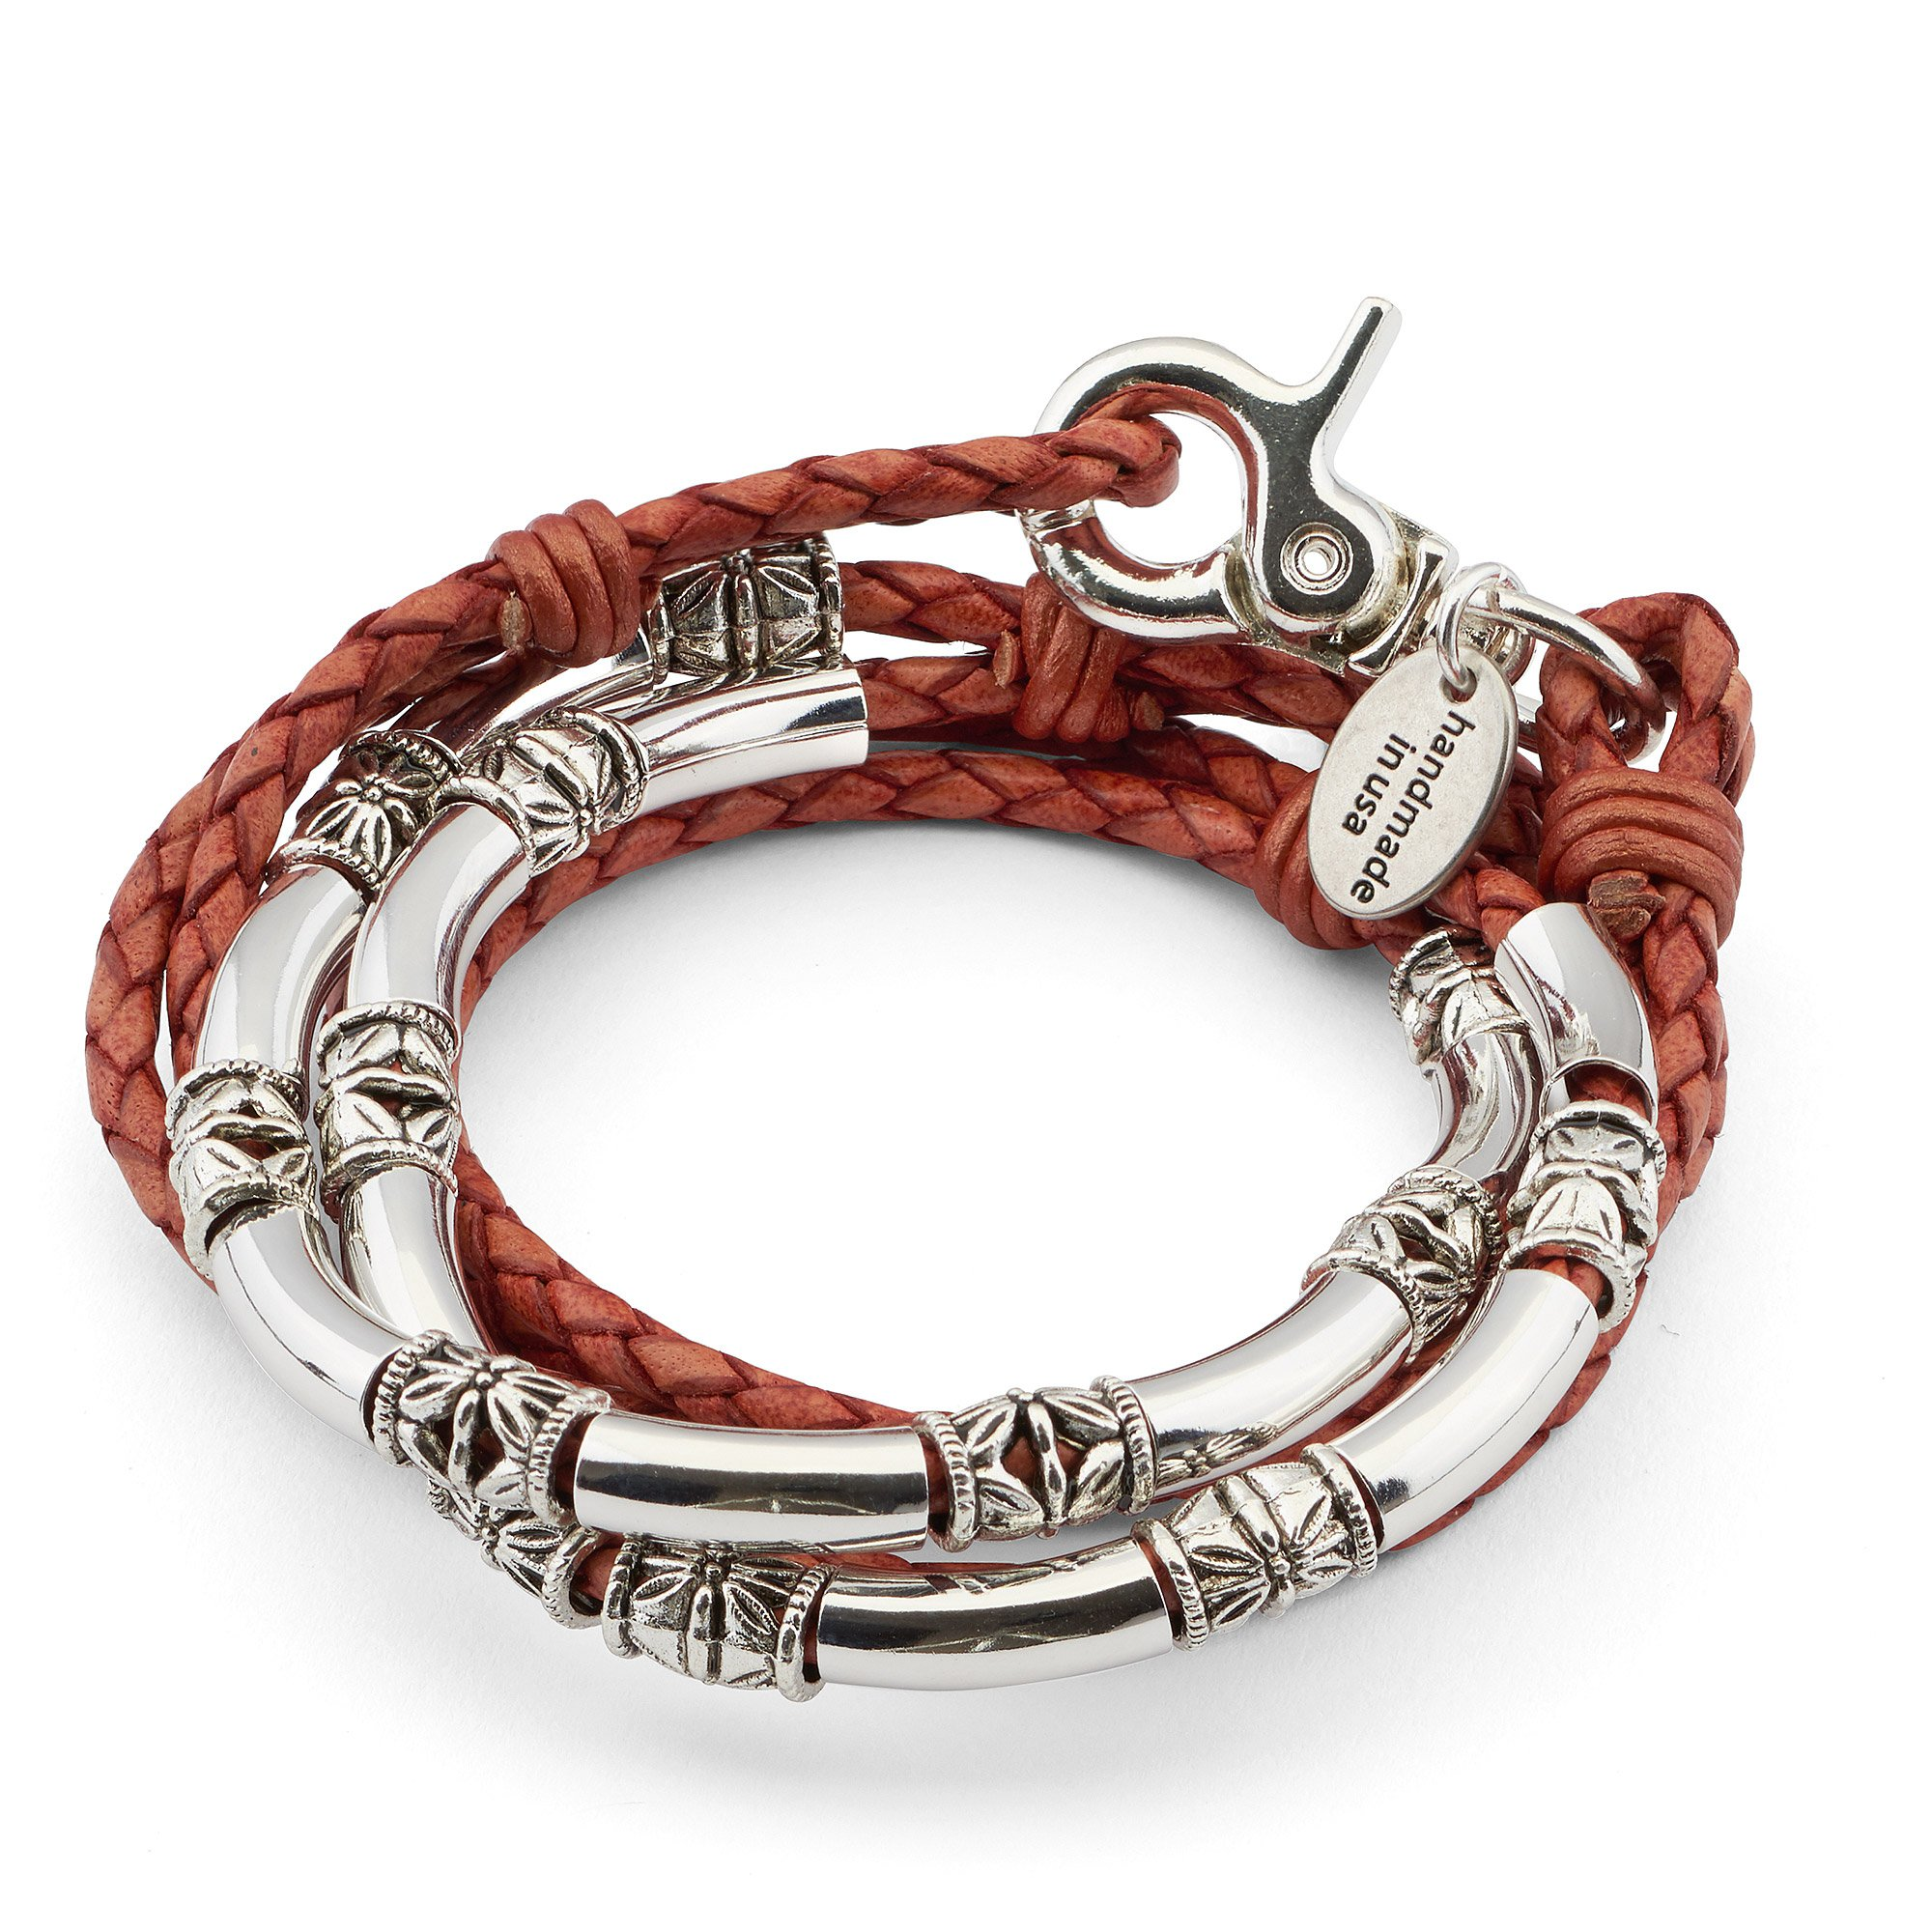 Maxi Silver Plate and Braided Leather Wrap Bracelet Necklace in Natural Red Spice Leather (MEDIUM)